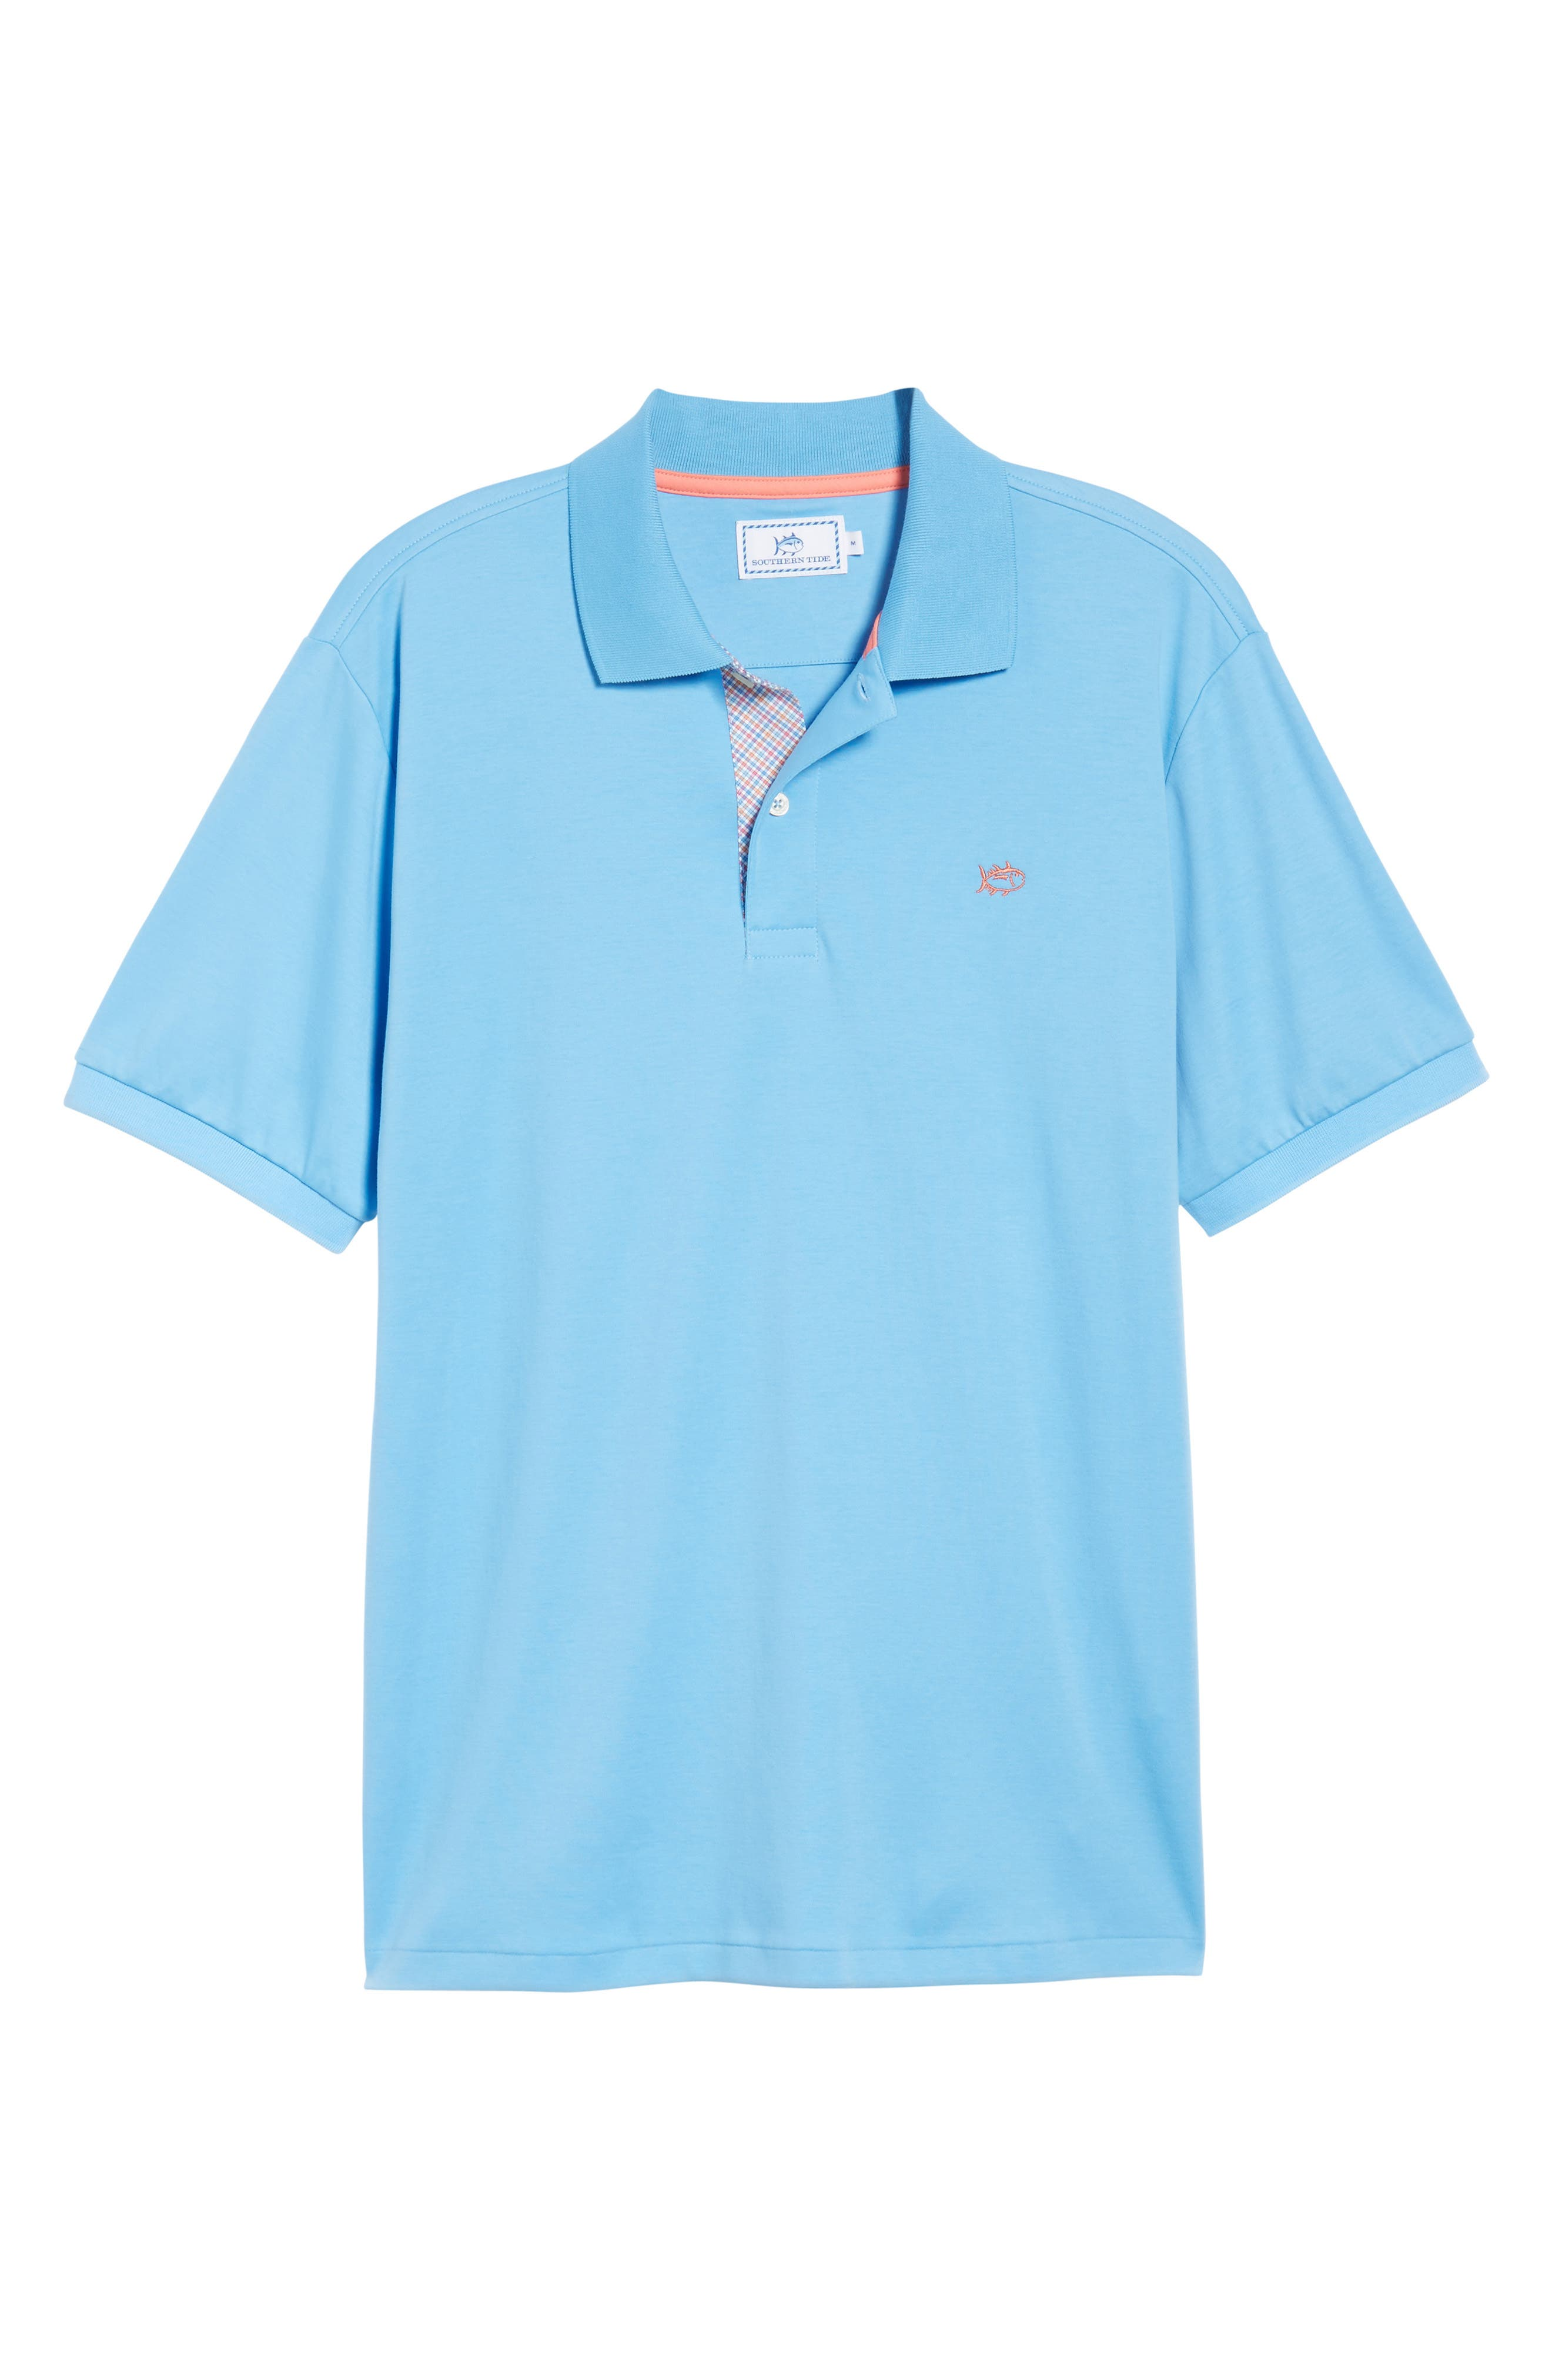 Sugar Mill Jersey Polo,                             Alternate thumbnail 6, color,                             Ocean Channel